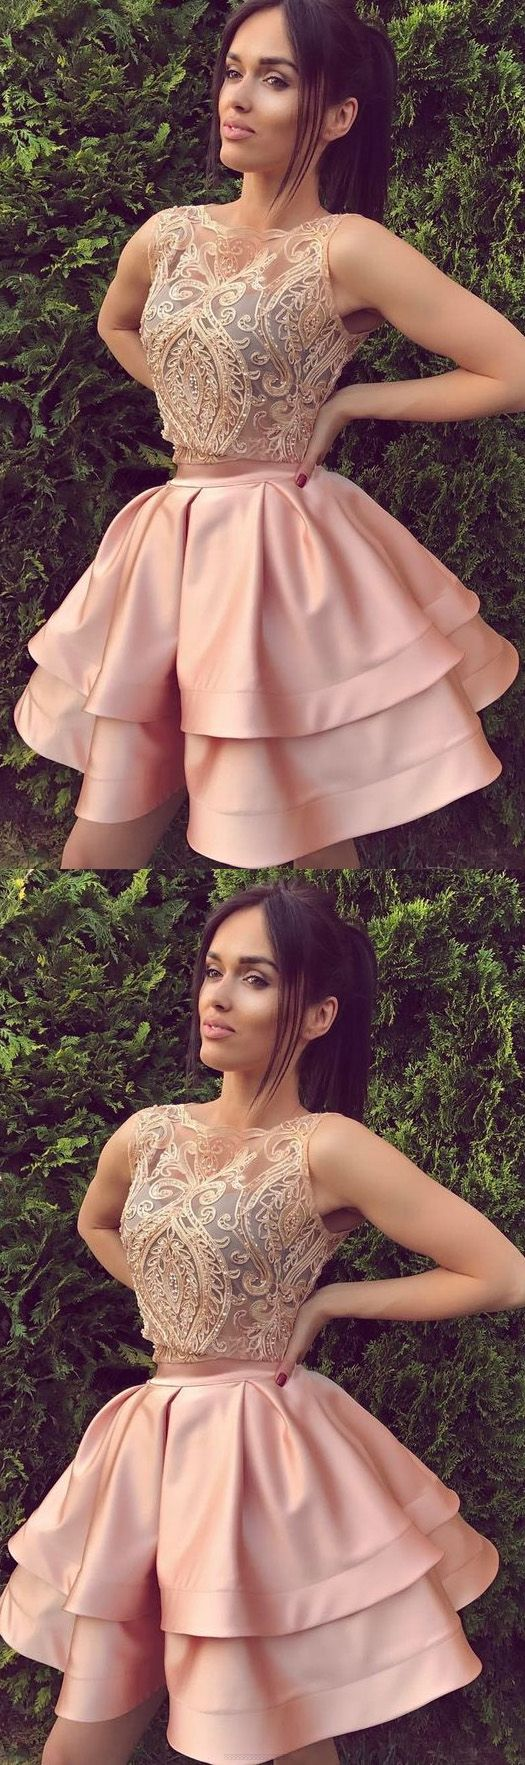 Prom Dresses 2017, Short Prom Dresses, Two Piece Prom Dresses, 2017 Prom Dresses, Pink Prom Dresses, Pink Homecoming Dresses, Short Homecoming Dresses, Prom Dresses Short, Homecoming Dresses 2017, Two Piece Dresses, Bateau Party Dresses, Pink Bateau Homecoming Dresses, Pink Bateau Prom Dresses, 2017 Homecoming Dress Beading Bateau Short Prom Dress Party Dress